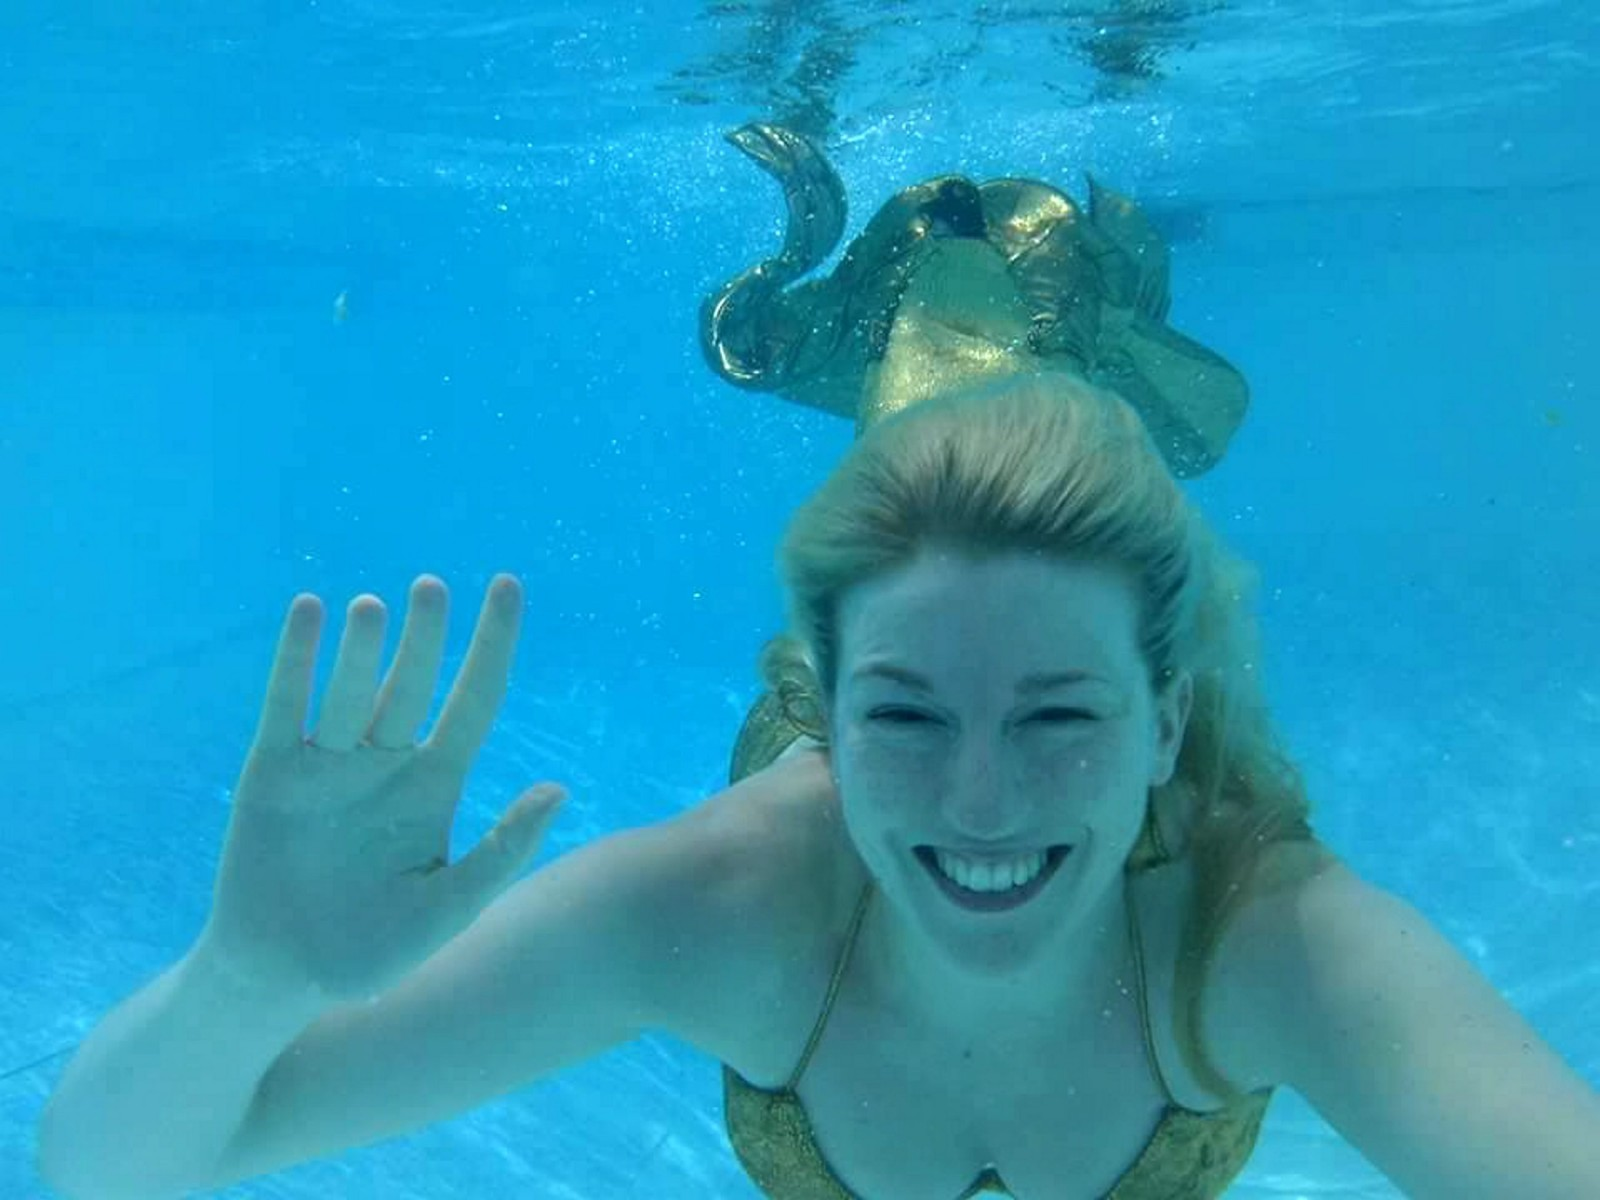 Underwater Wonder! Can you guess which classic film inspired this real life mermaid?